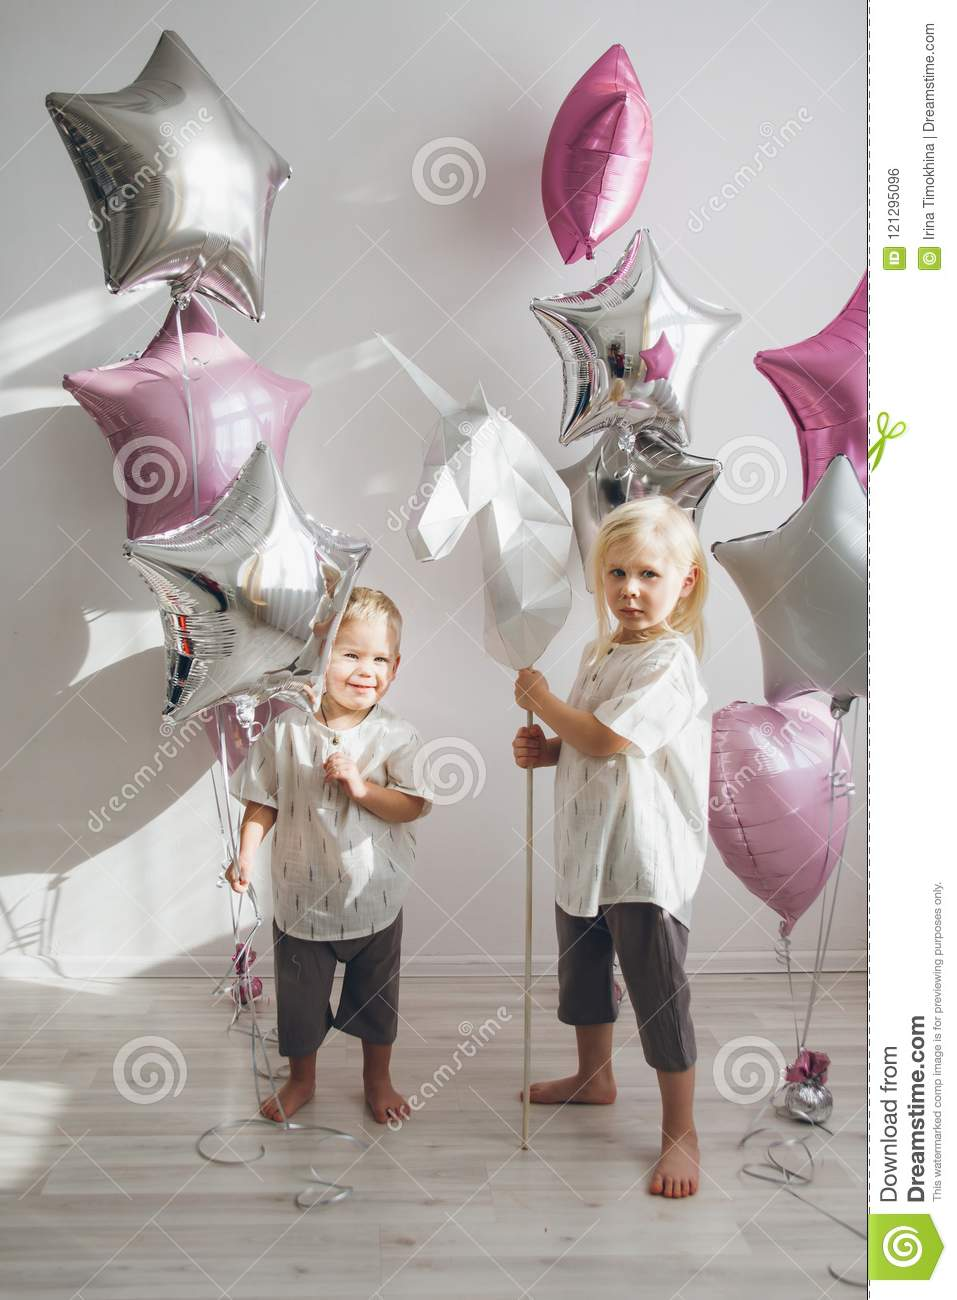 Brother and sister holding balloons